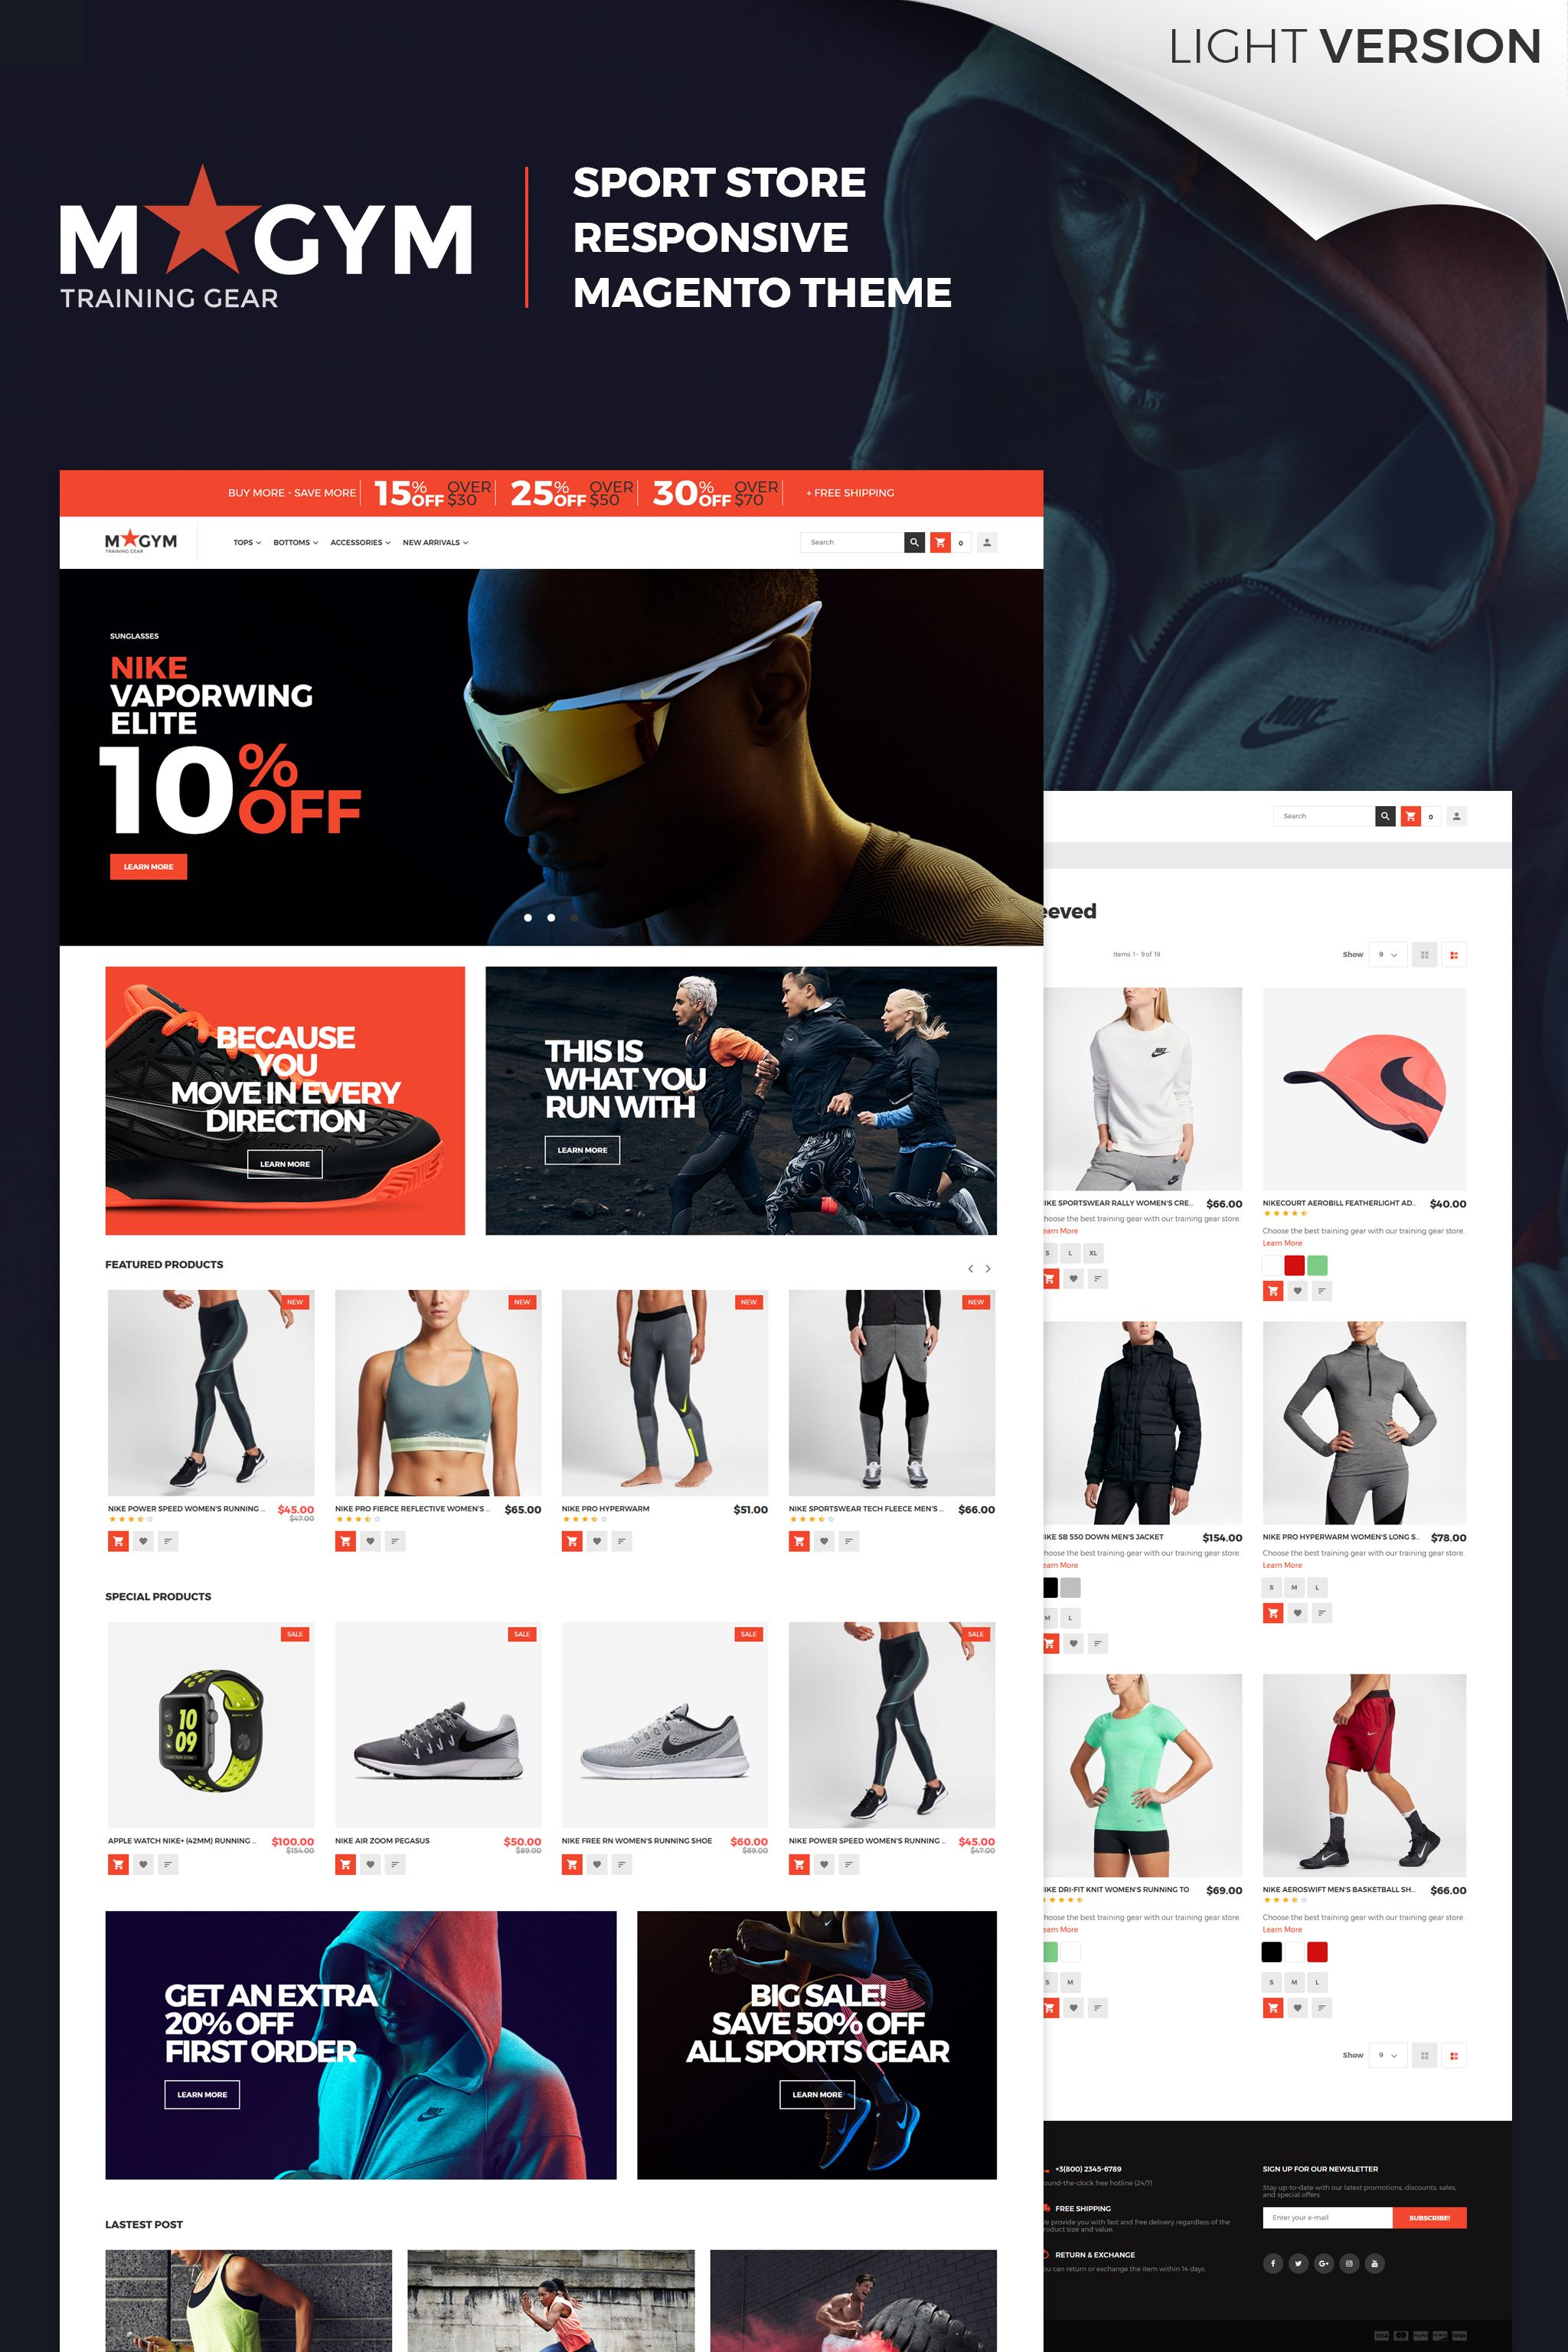 MyGym - Sport Store Magento 2 Theme